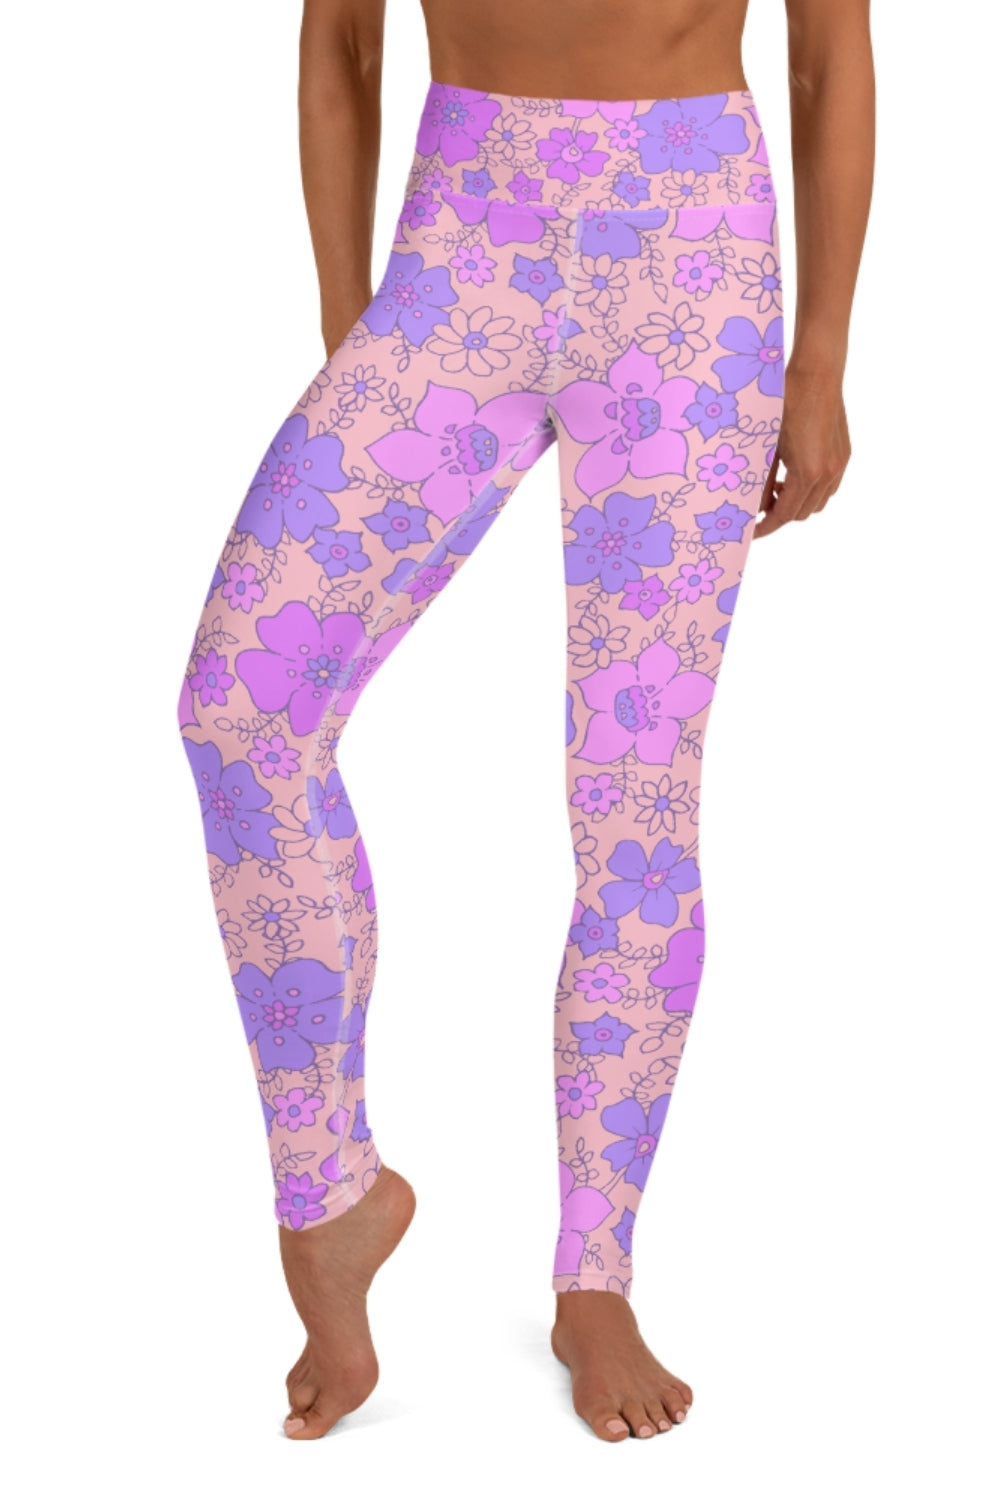 Honolulu Yoga Leggings